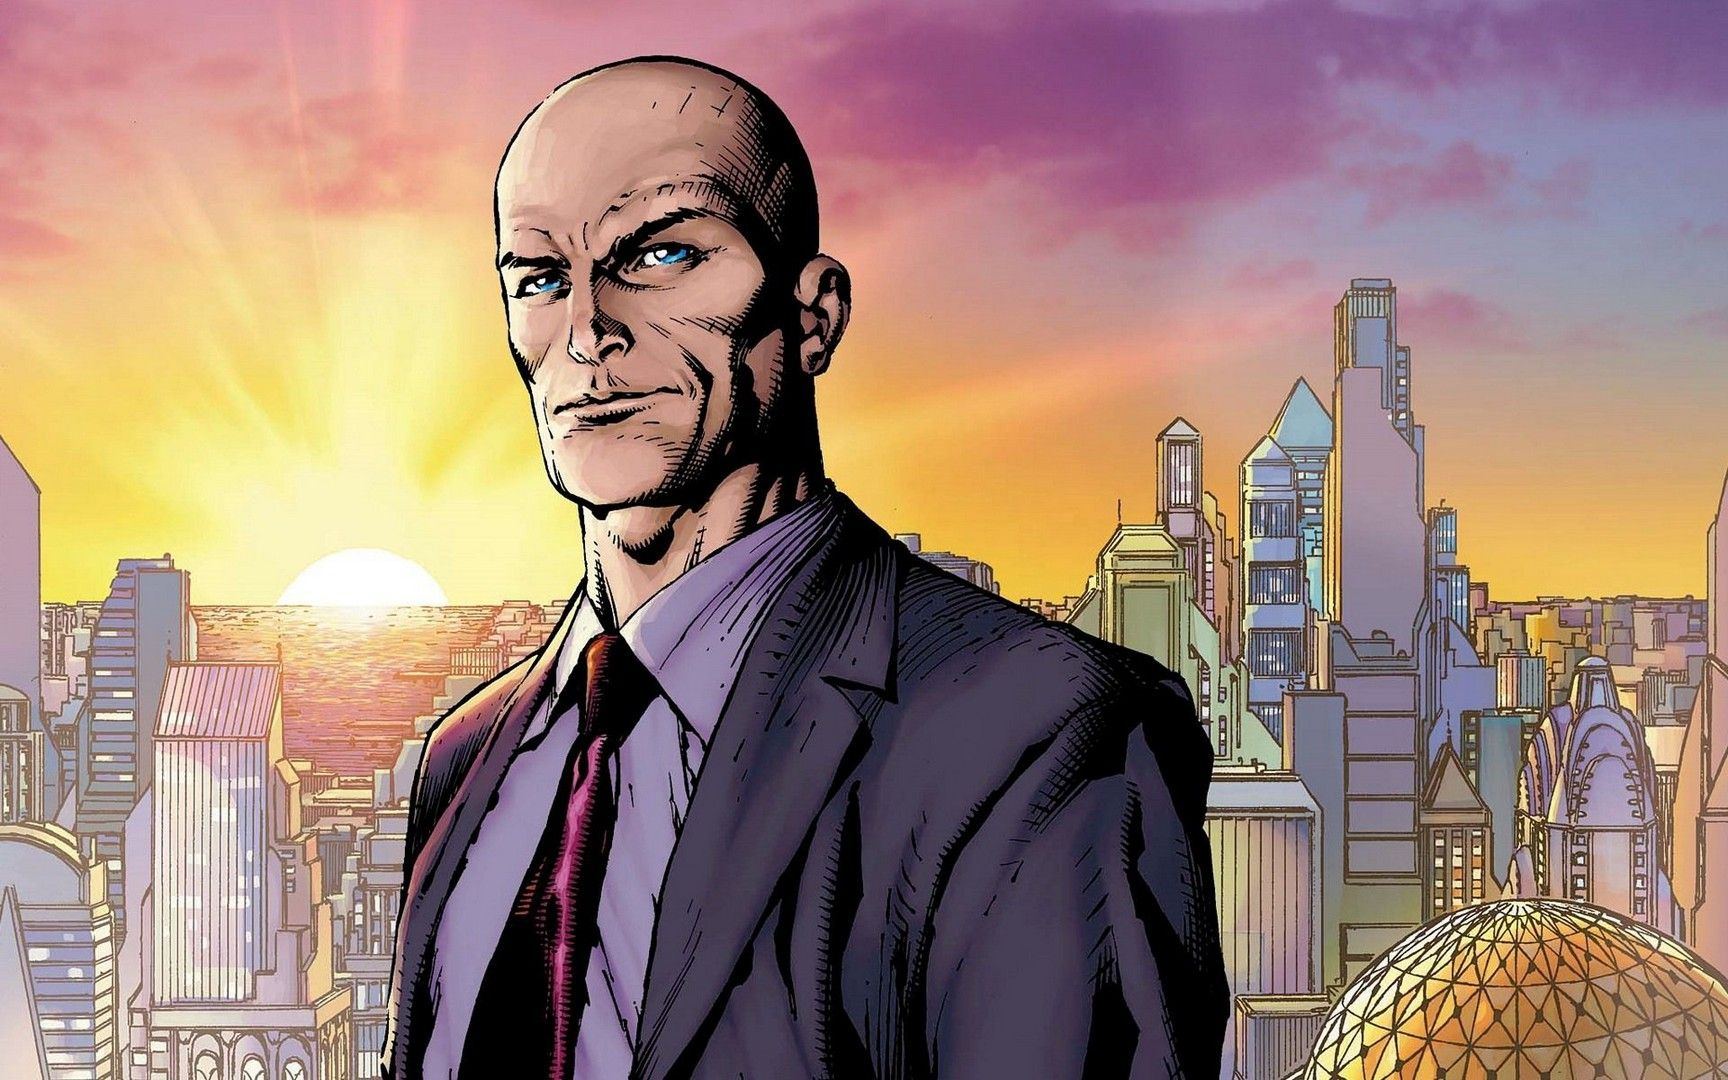 Lex Luthor images Chloe & Lex HD wallpaper and background photos